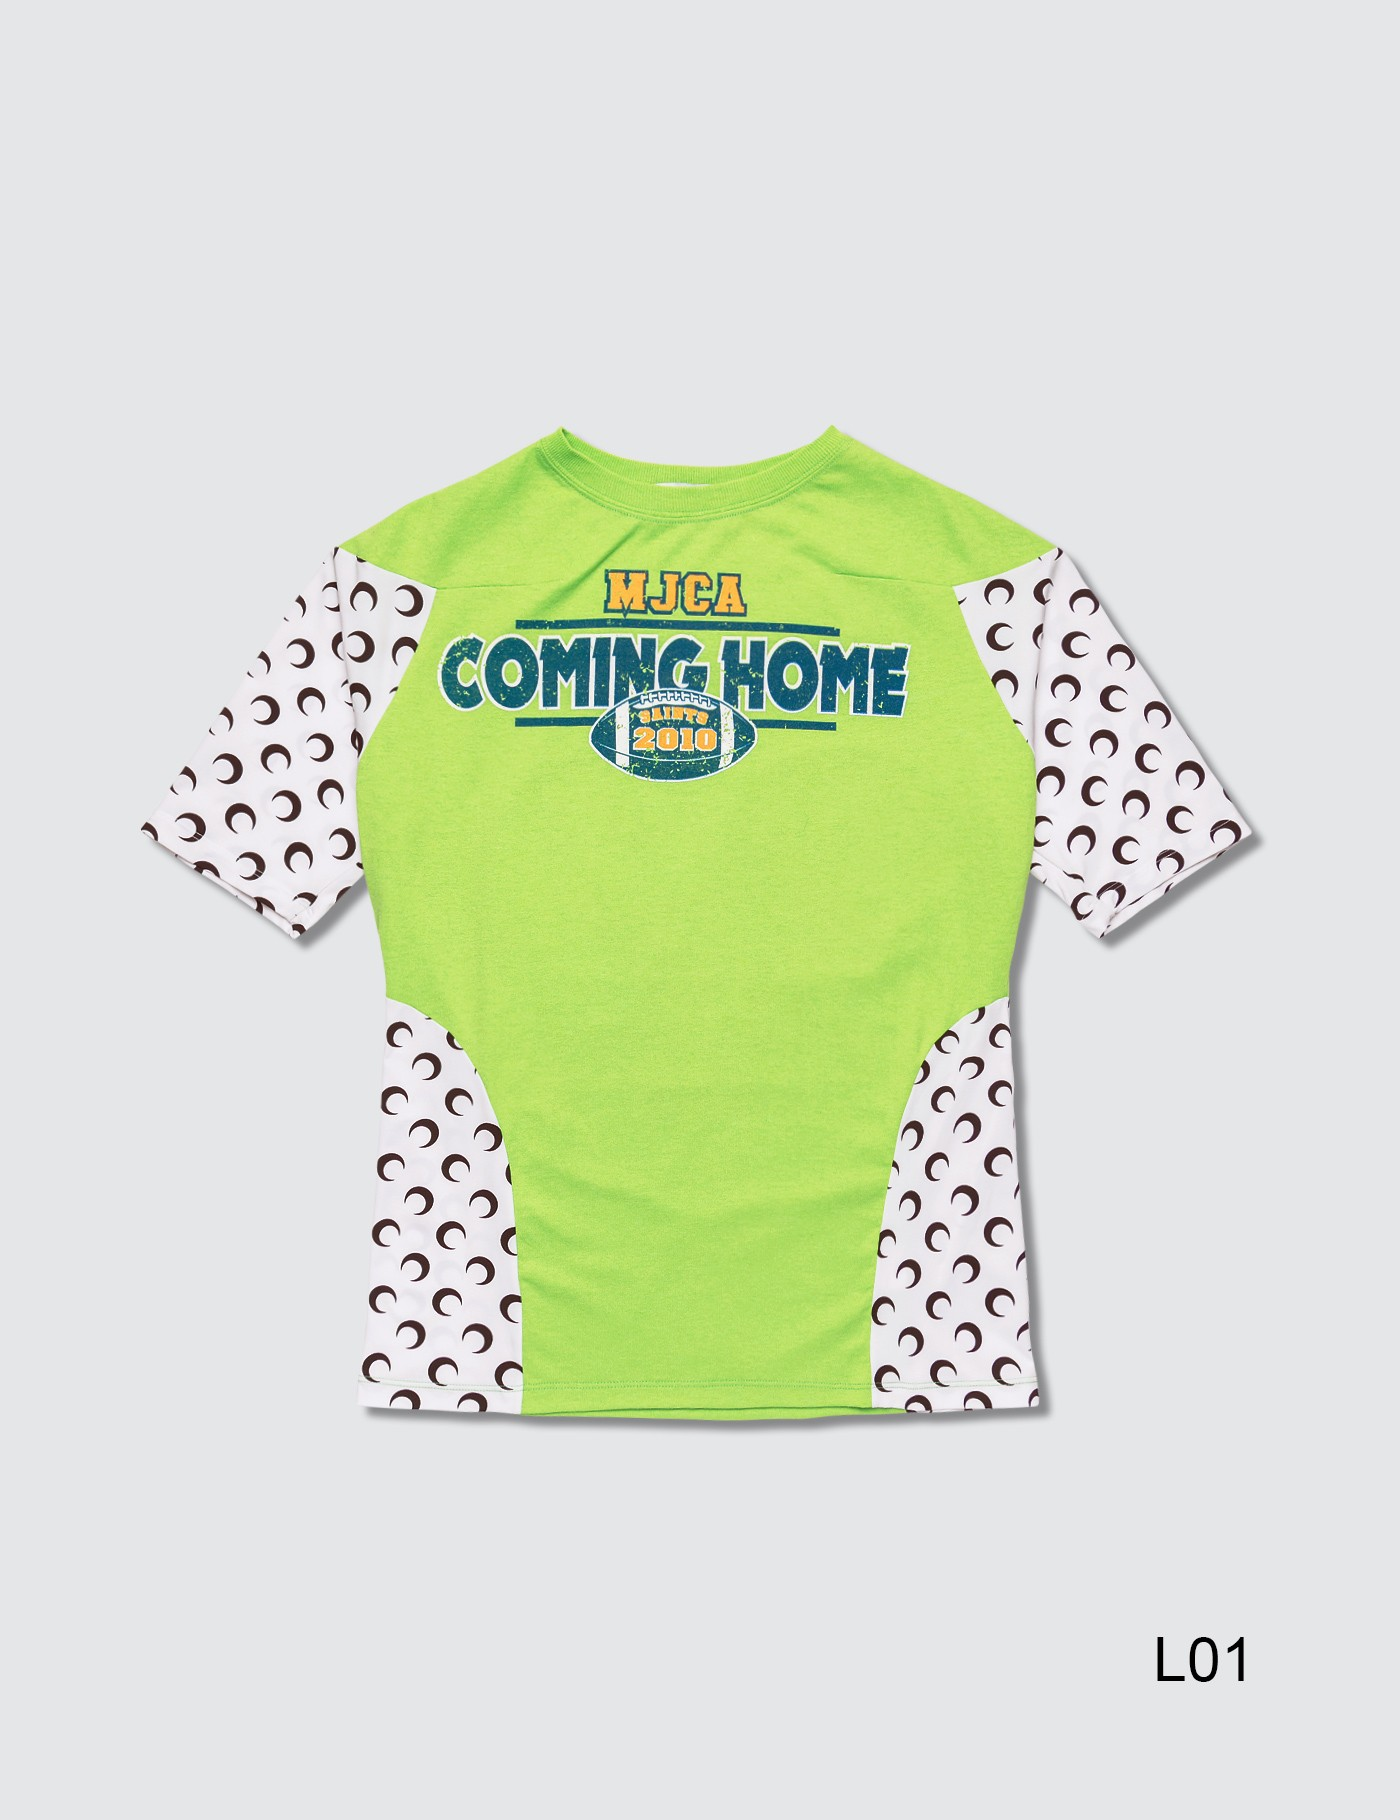 SHIRT1-KIDS Retro Philippines Palm Toddler//Infant Crew Neck Short Sleeve Shirt T-Shirt for Toddlers